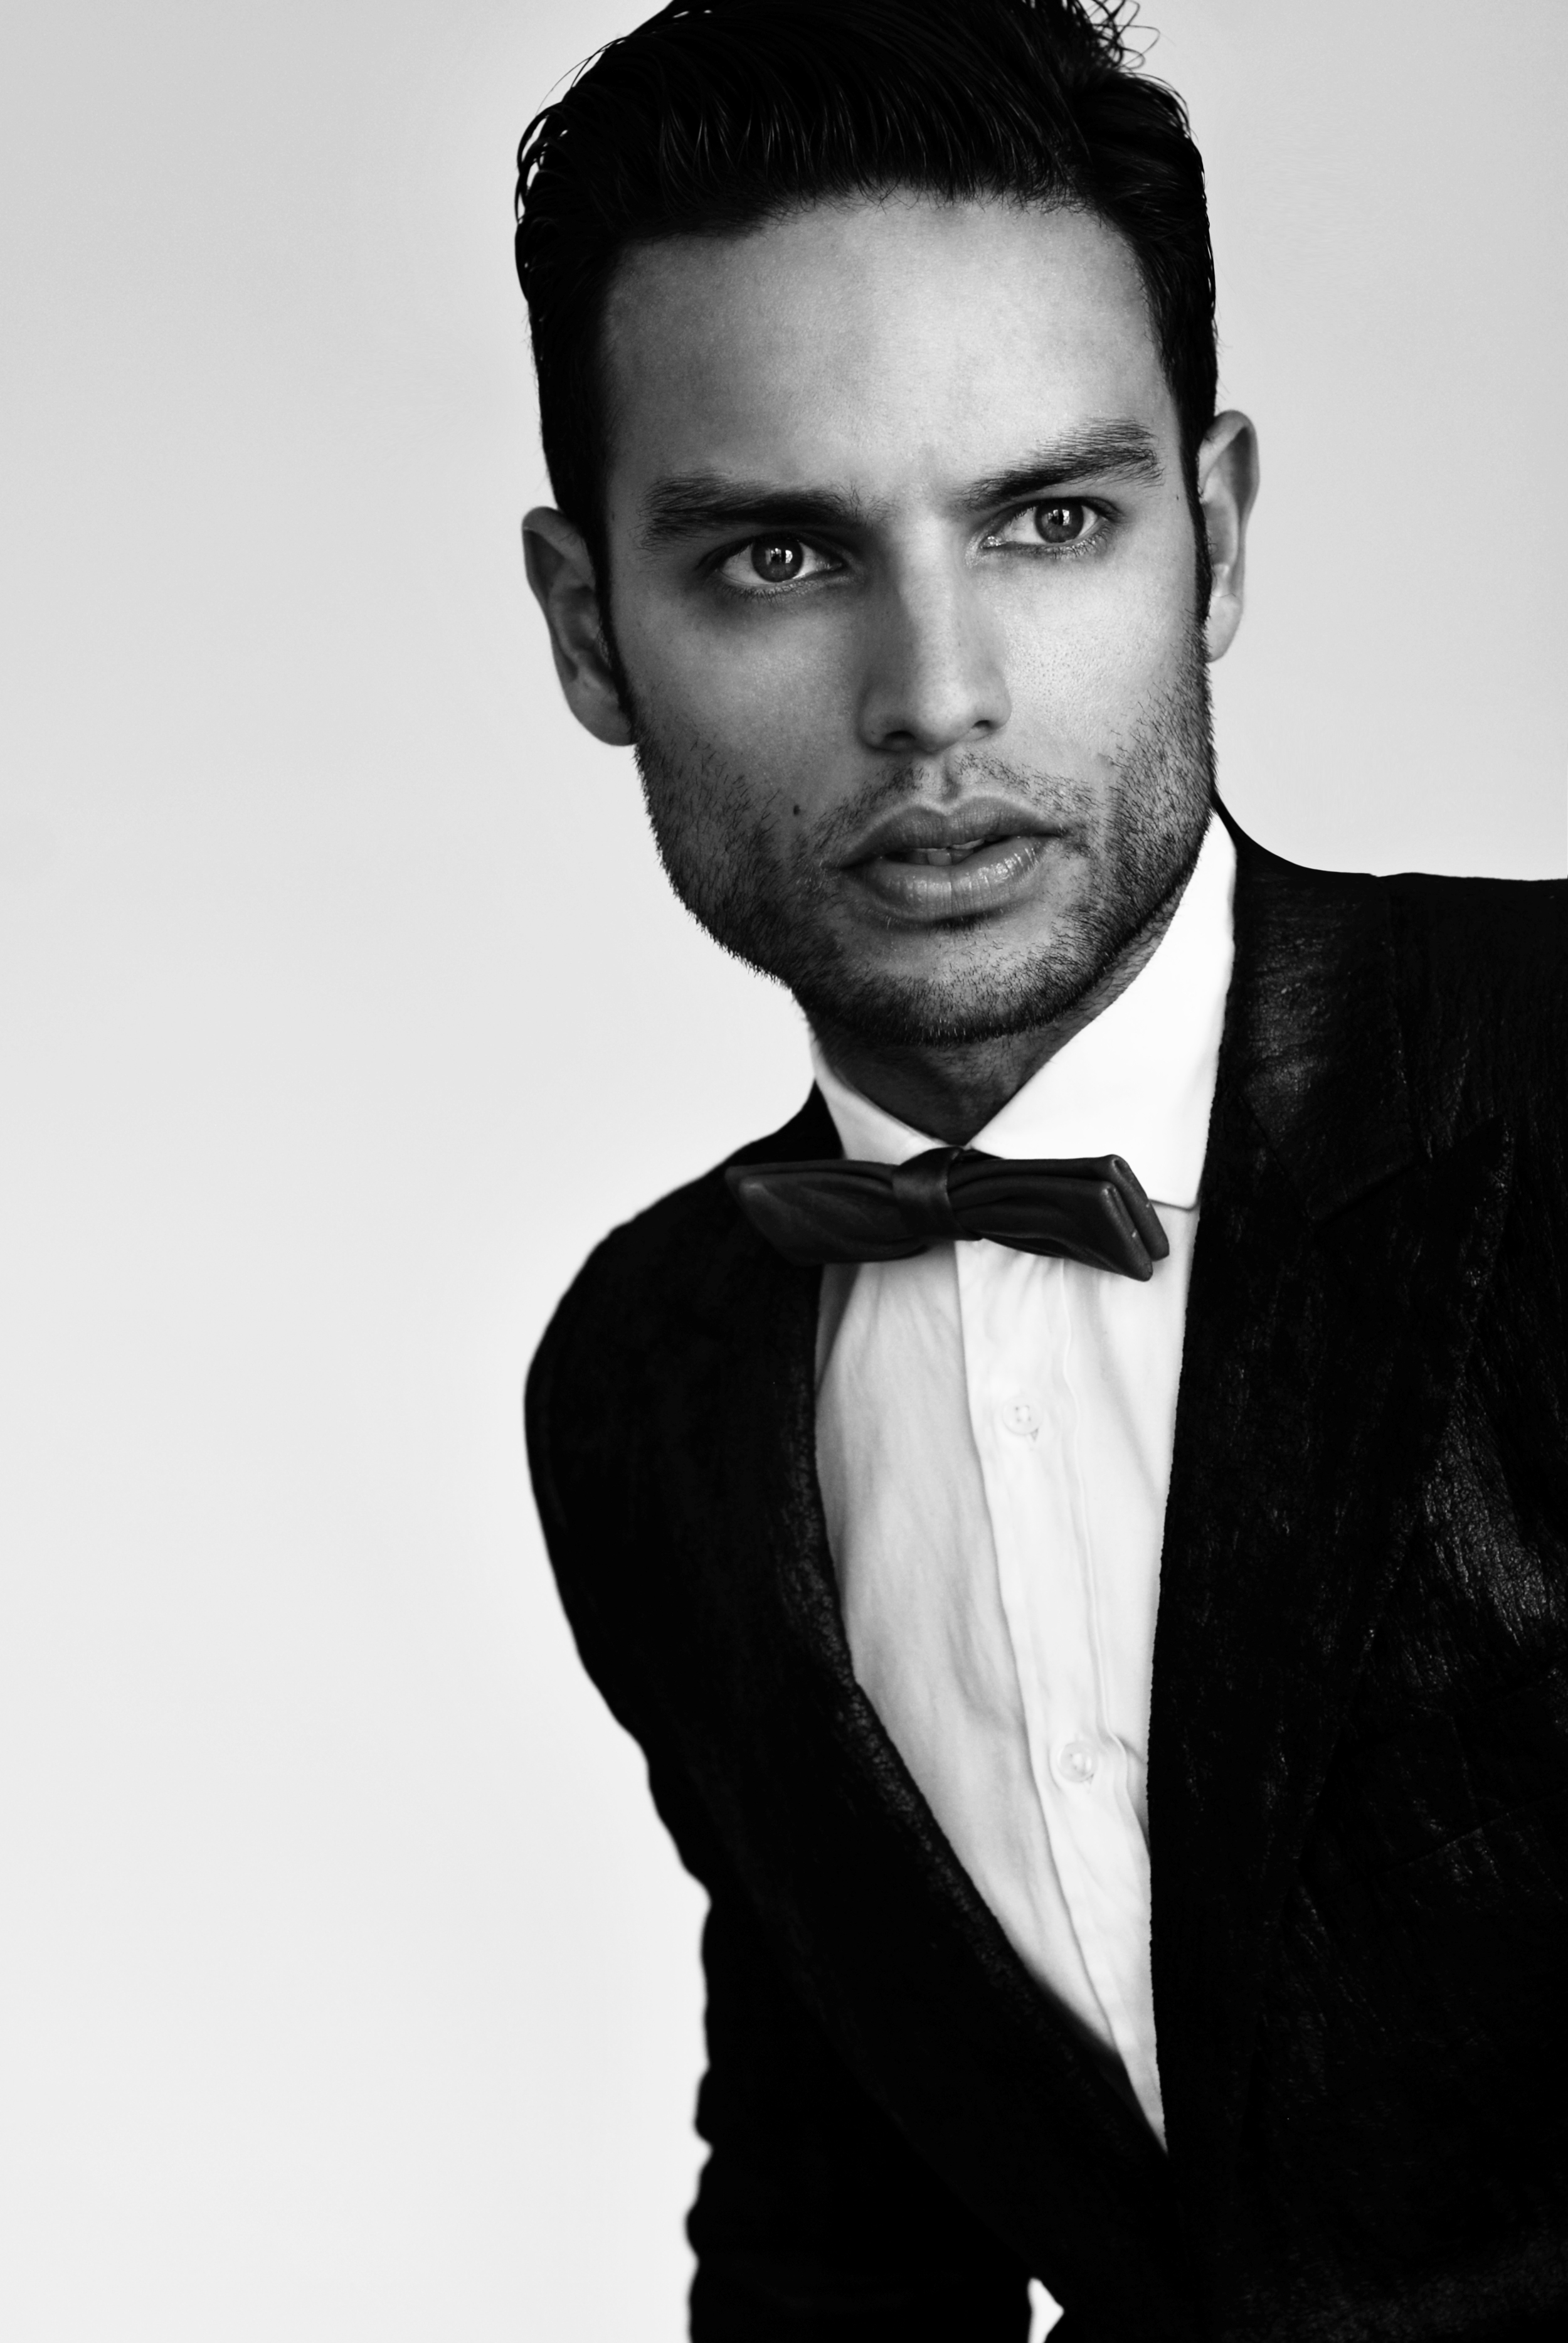 Alexis wears a suit and shirt by Simon Spurr and bow-tie by Timo Weiland.